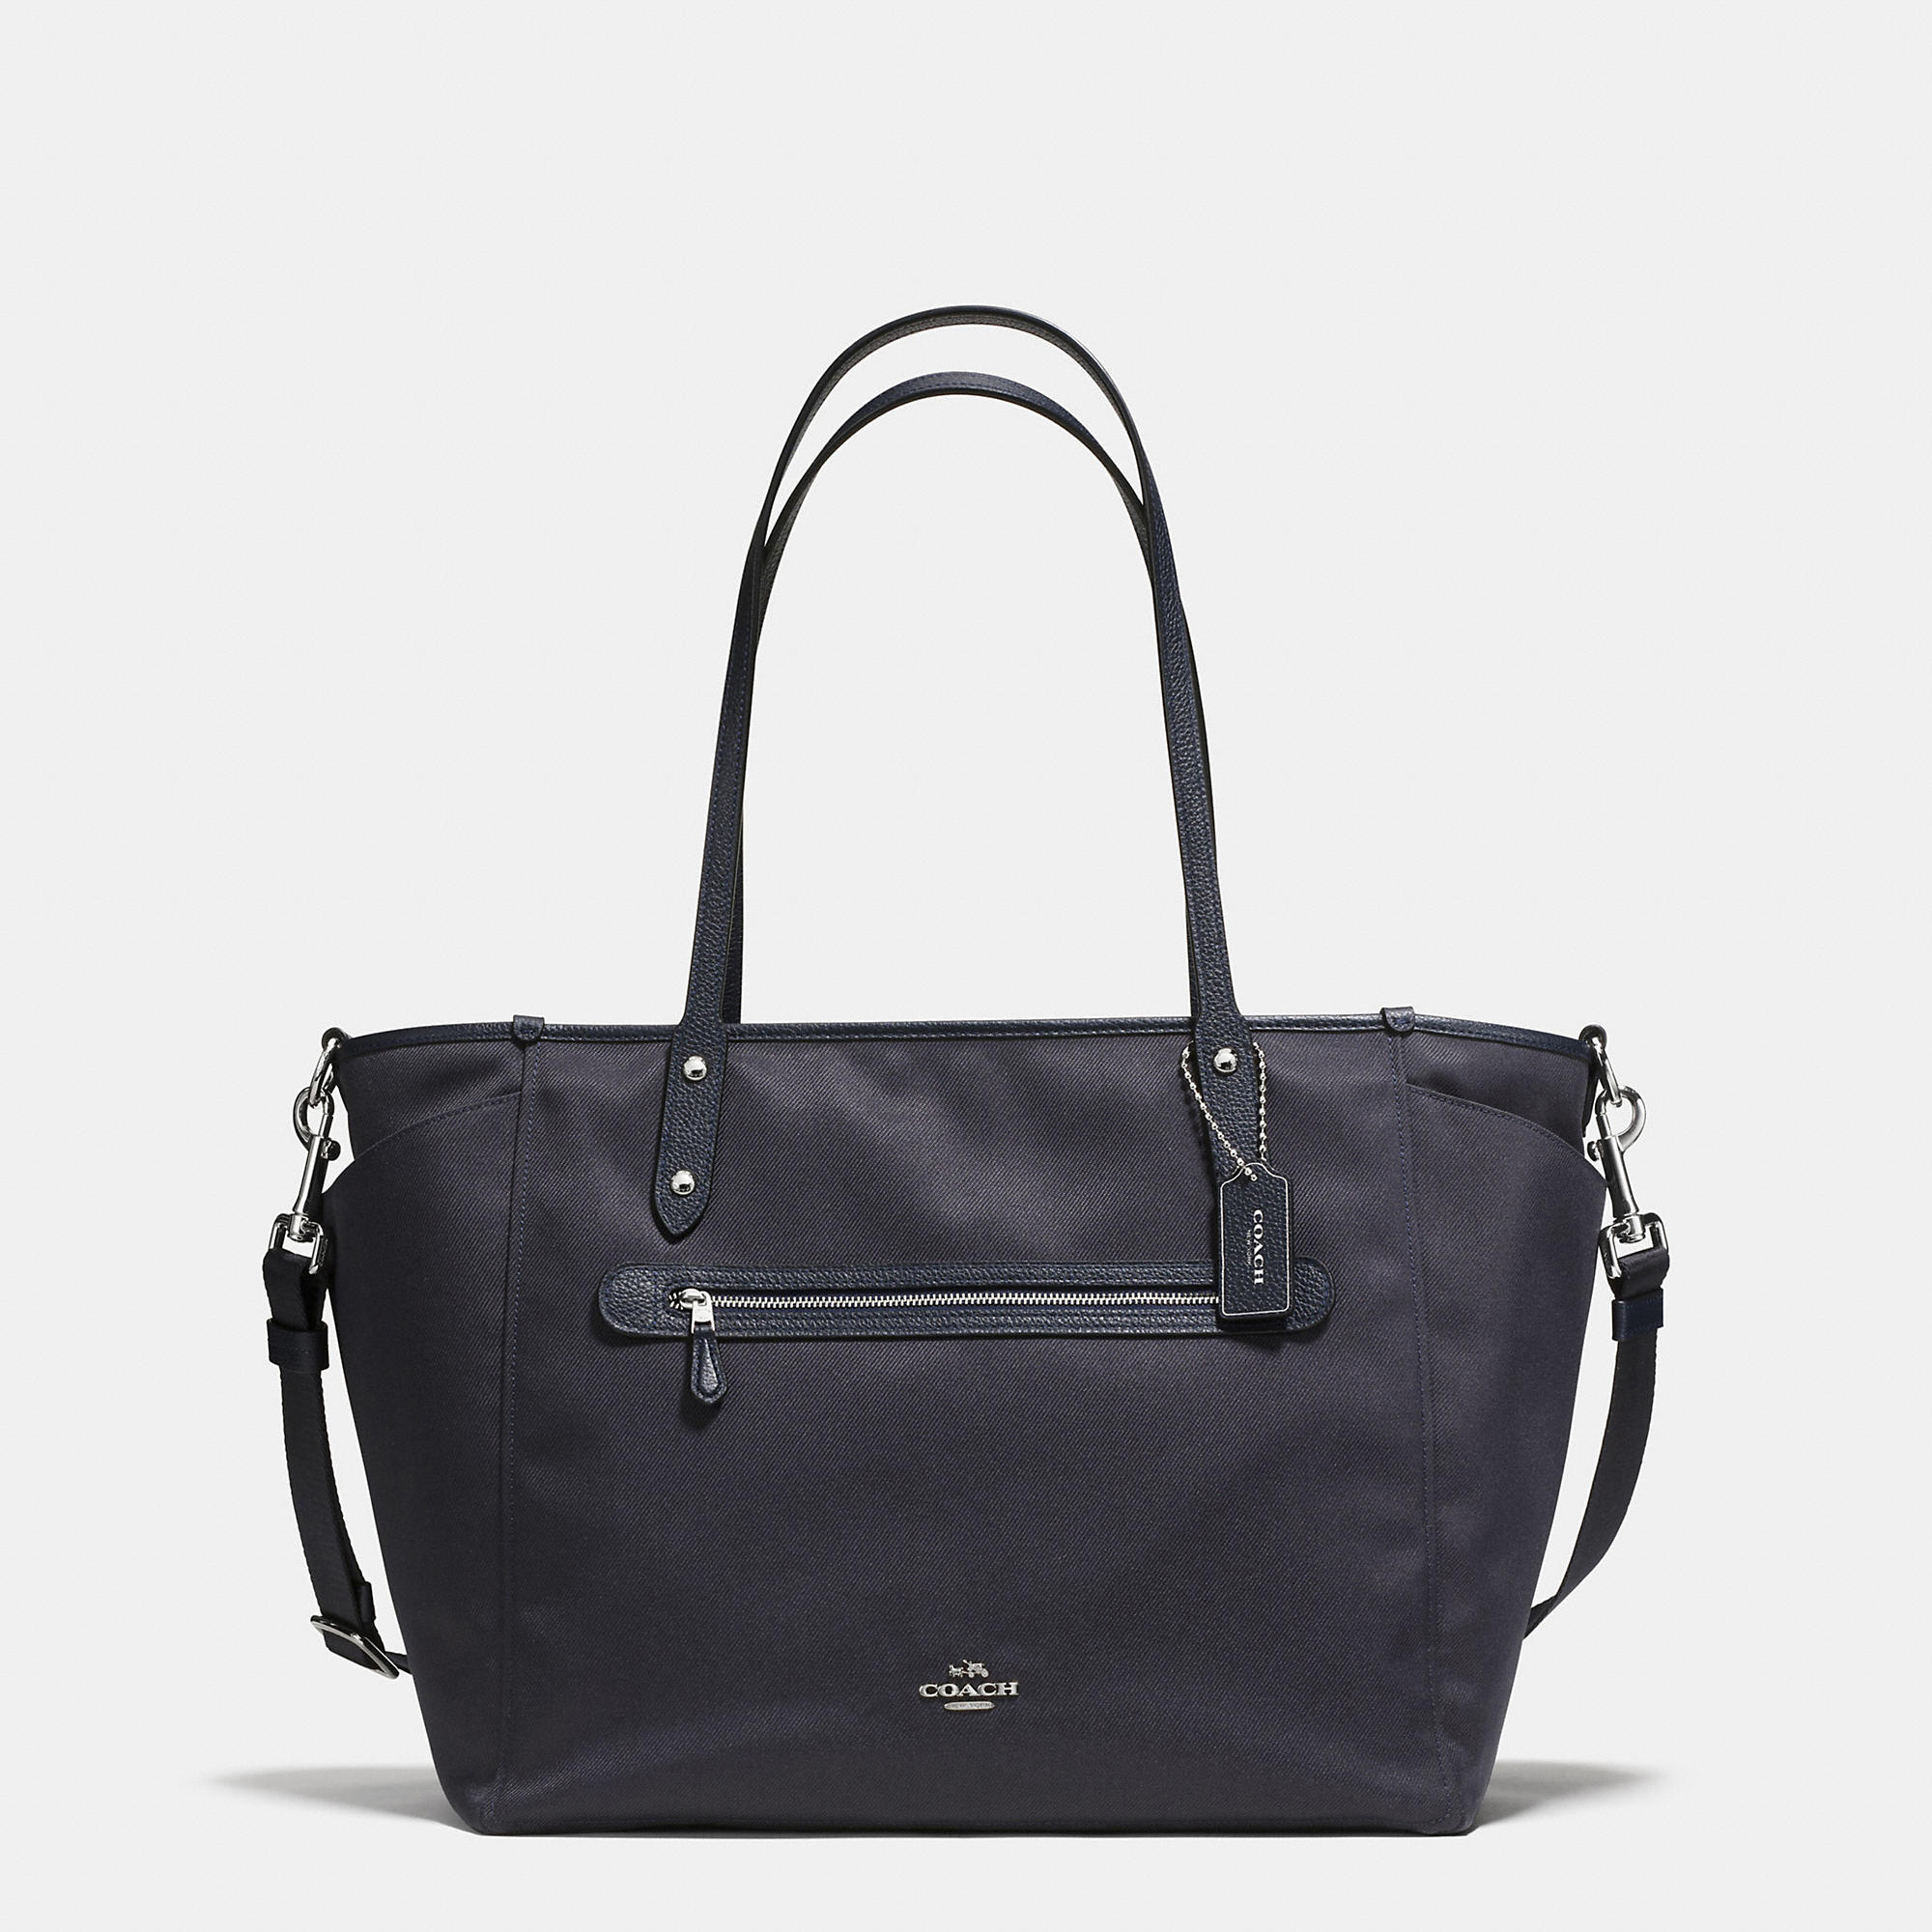 Coach Baby Tote In Navy/silver